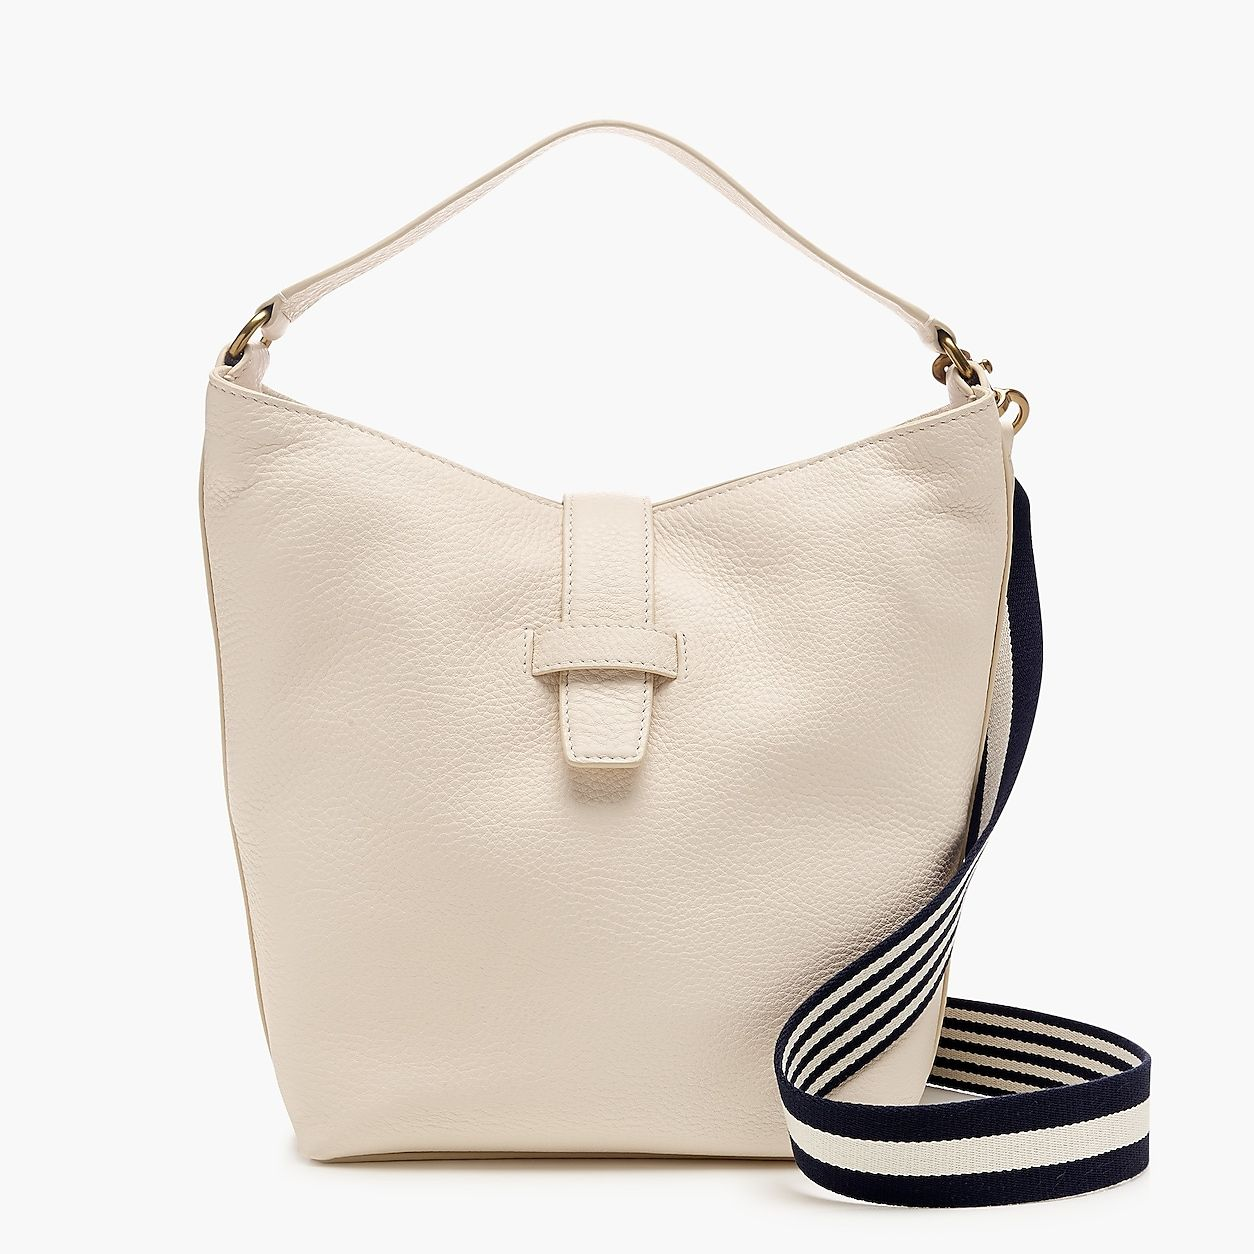 66eb9dd0be5 Signet Hobo Bag In Italian Leather | Products | Hobo purses, Bags ...